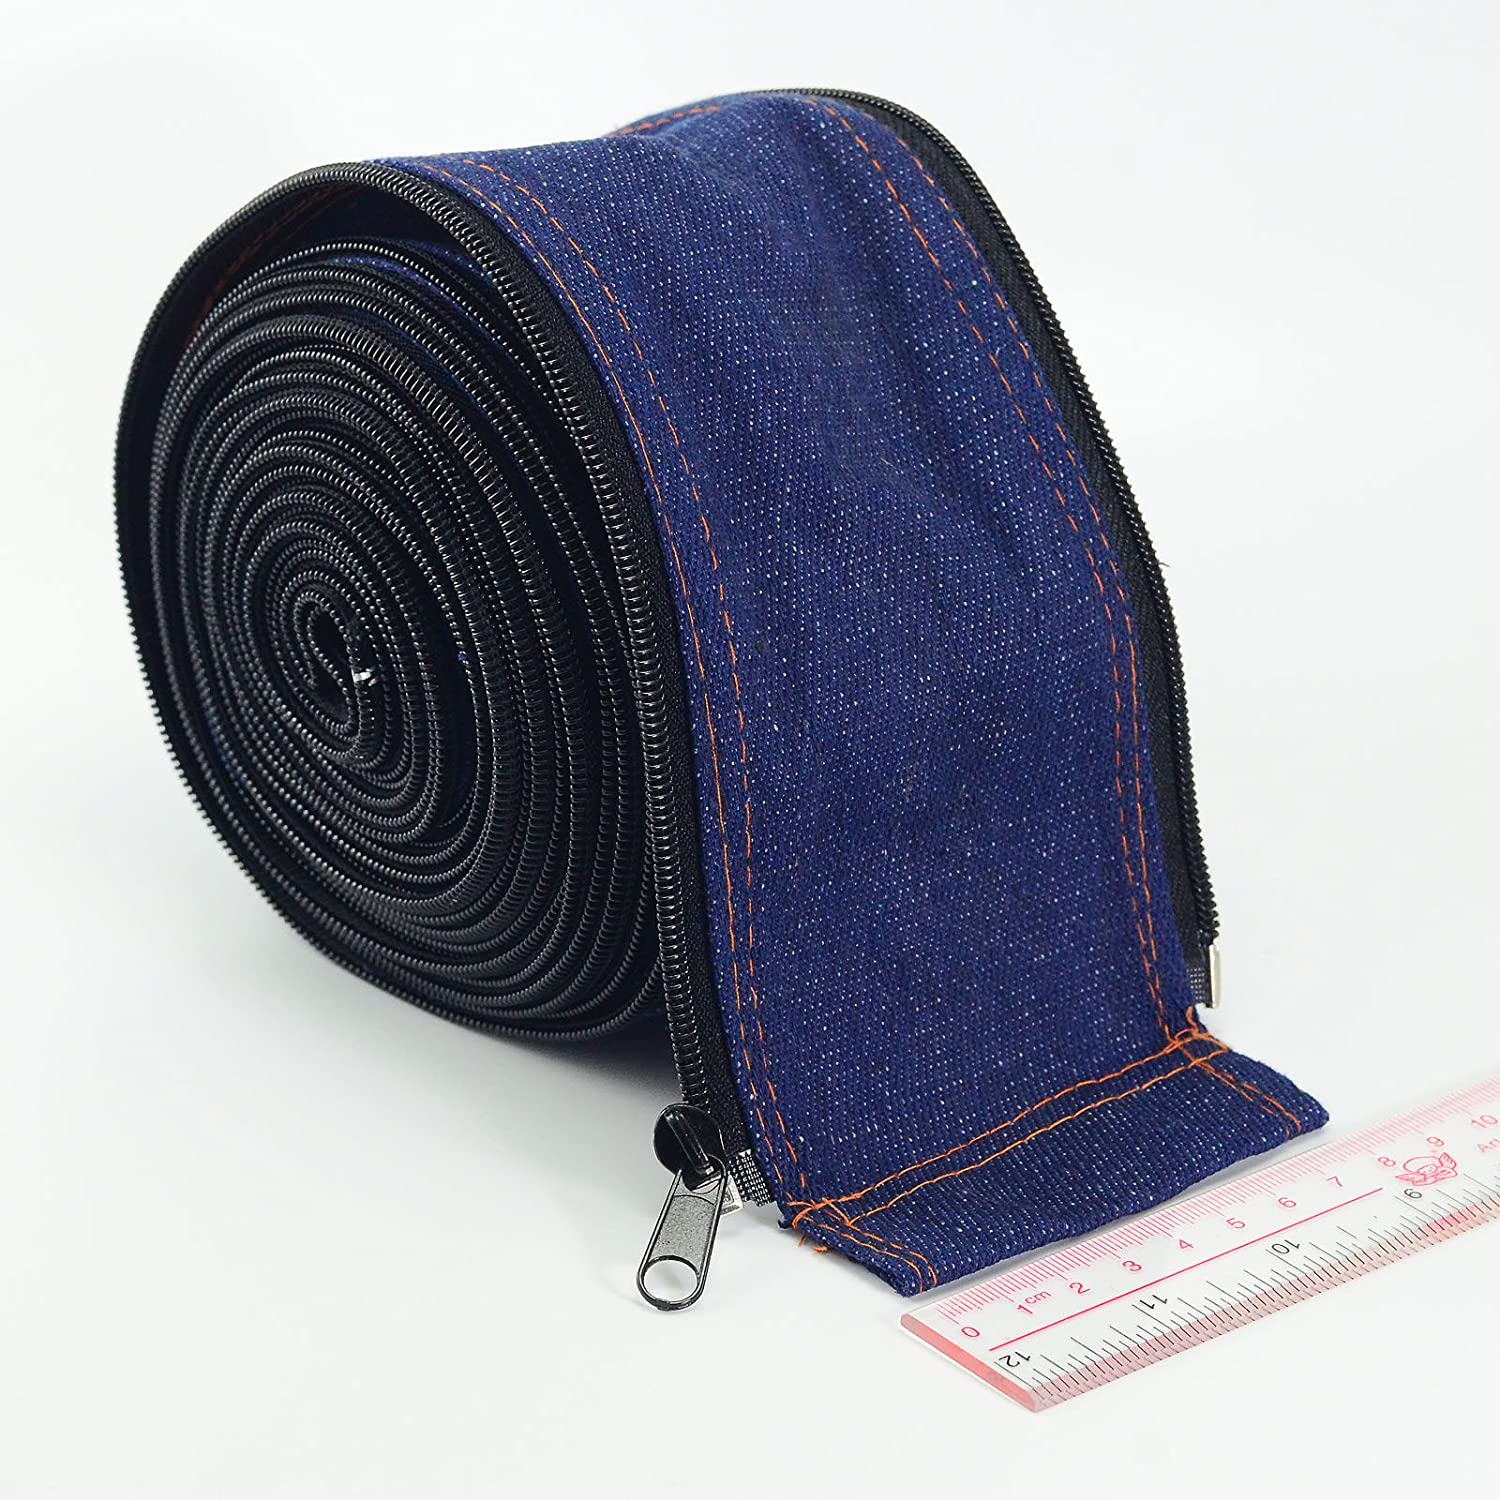 TIG Torch Cable Cover Cowboy Zipper Jacket 7.5 Meter /& 25 Foot Length